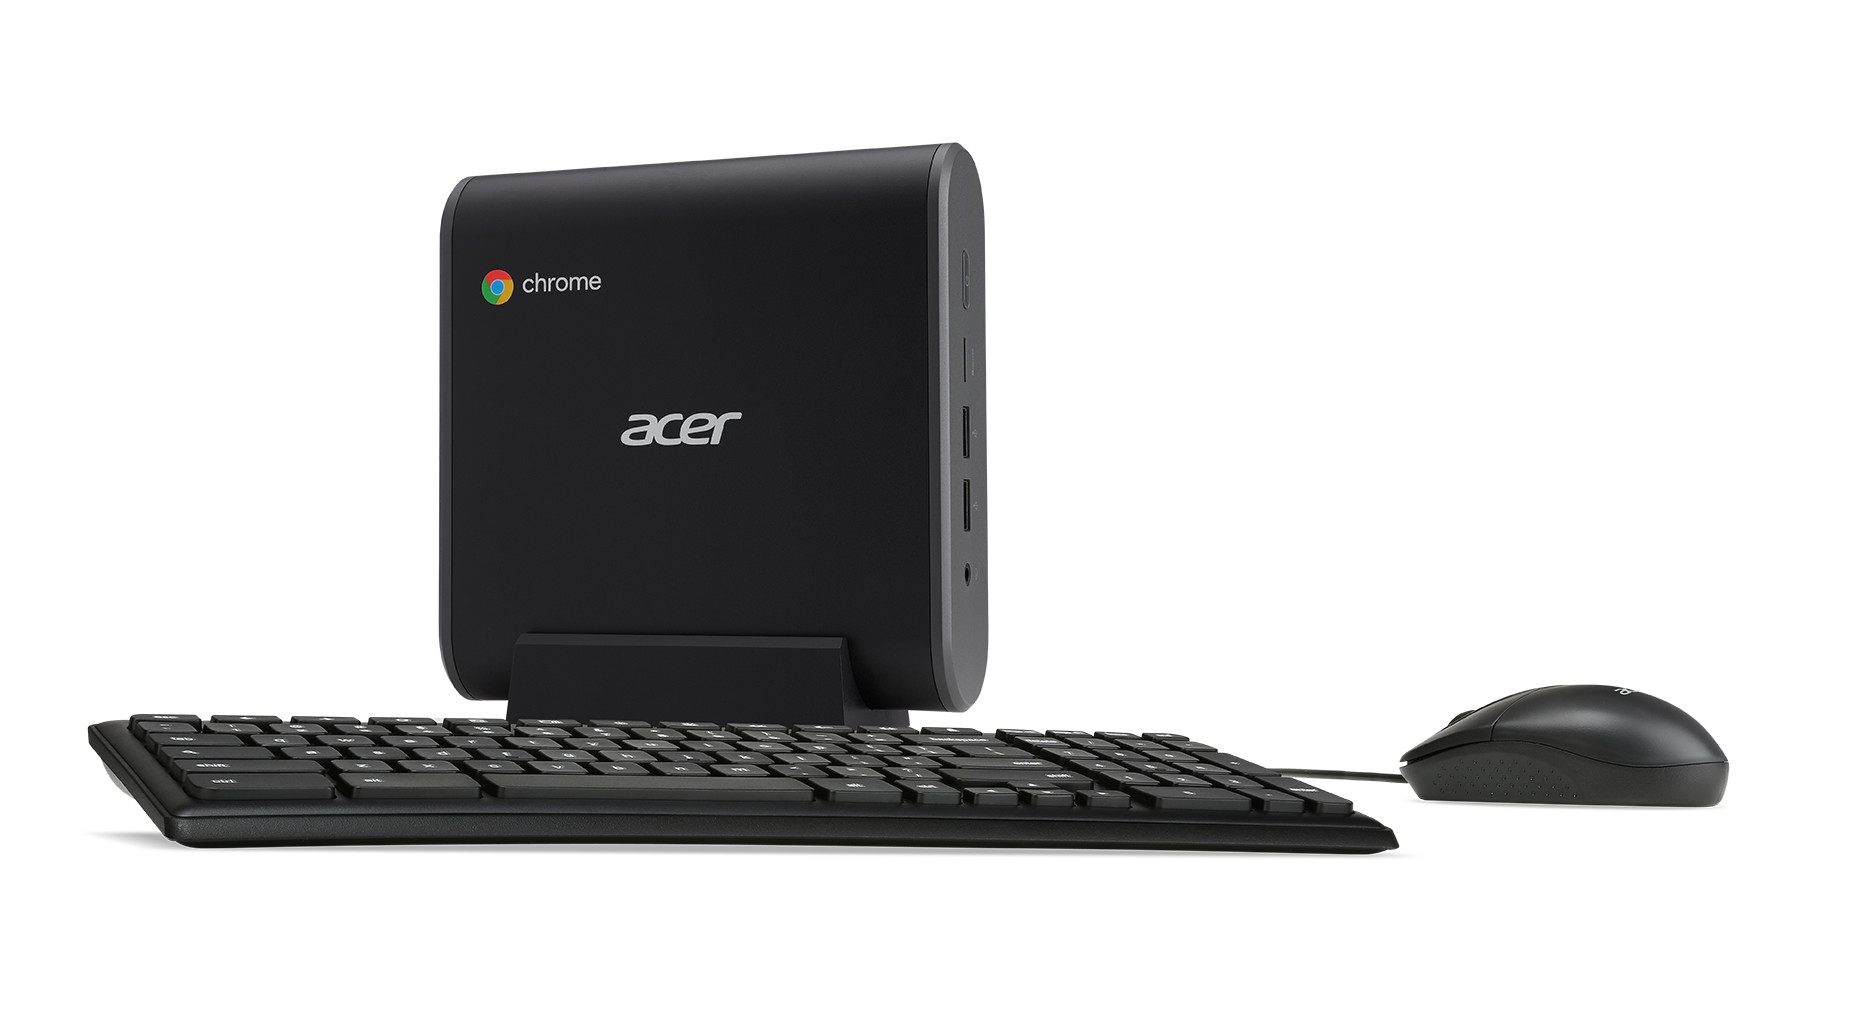 Acer Debuts Stylish Convertible Acer Chromebook Spin 11 at Bett 2018